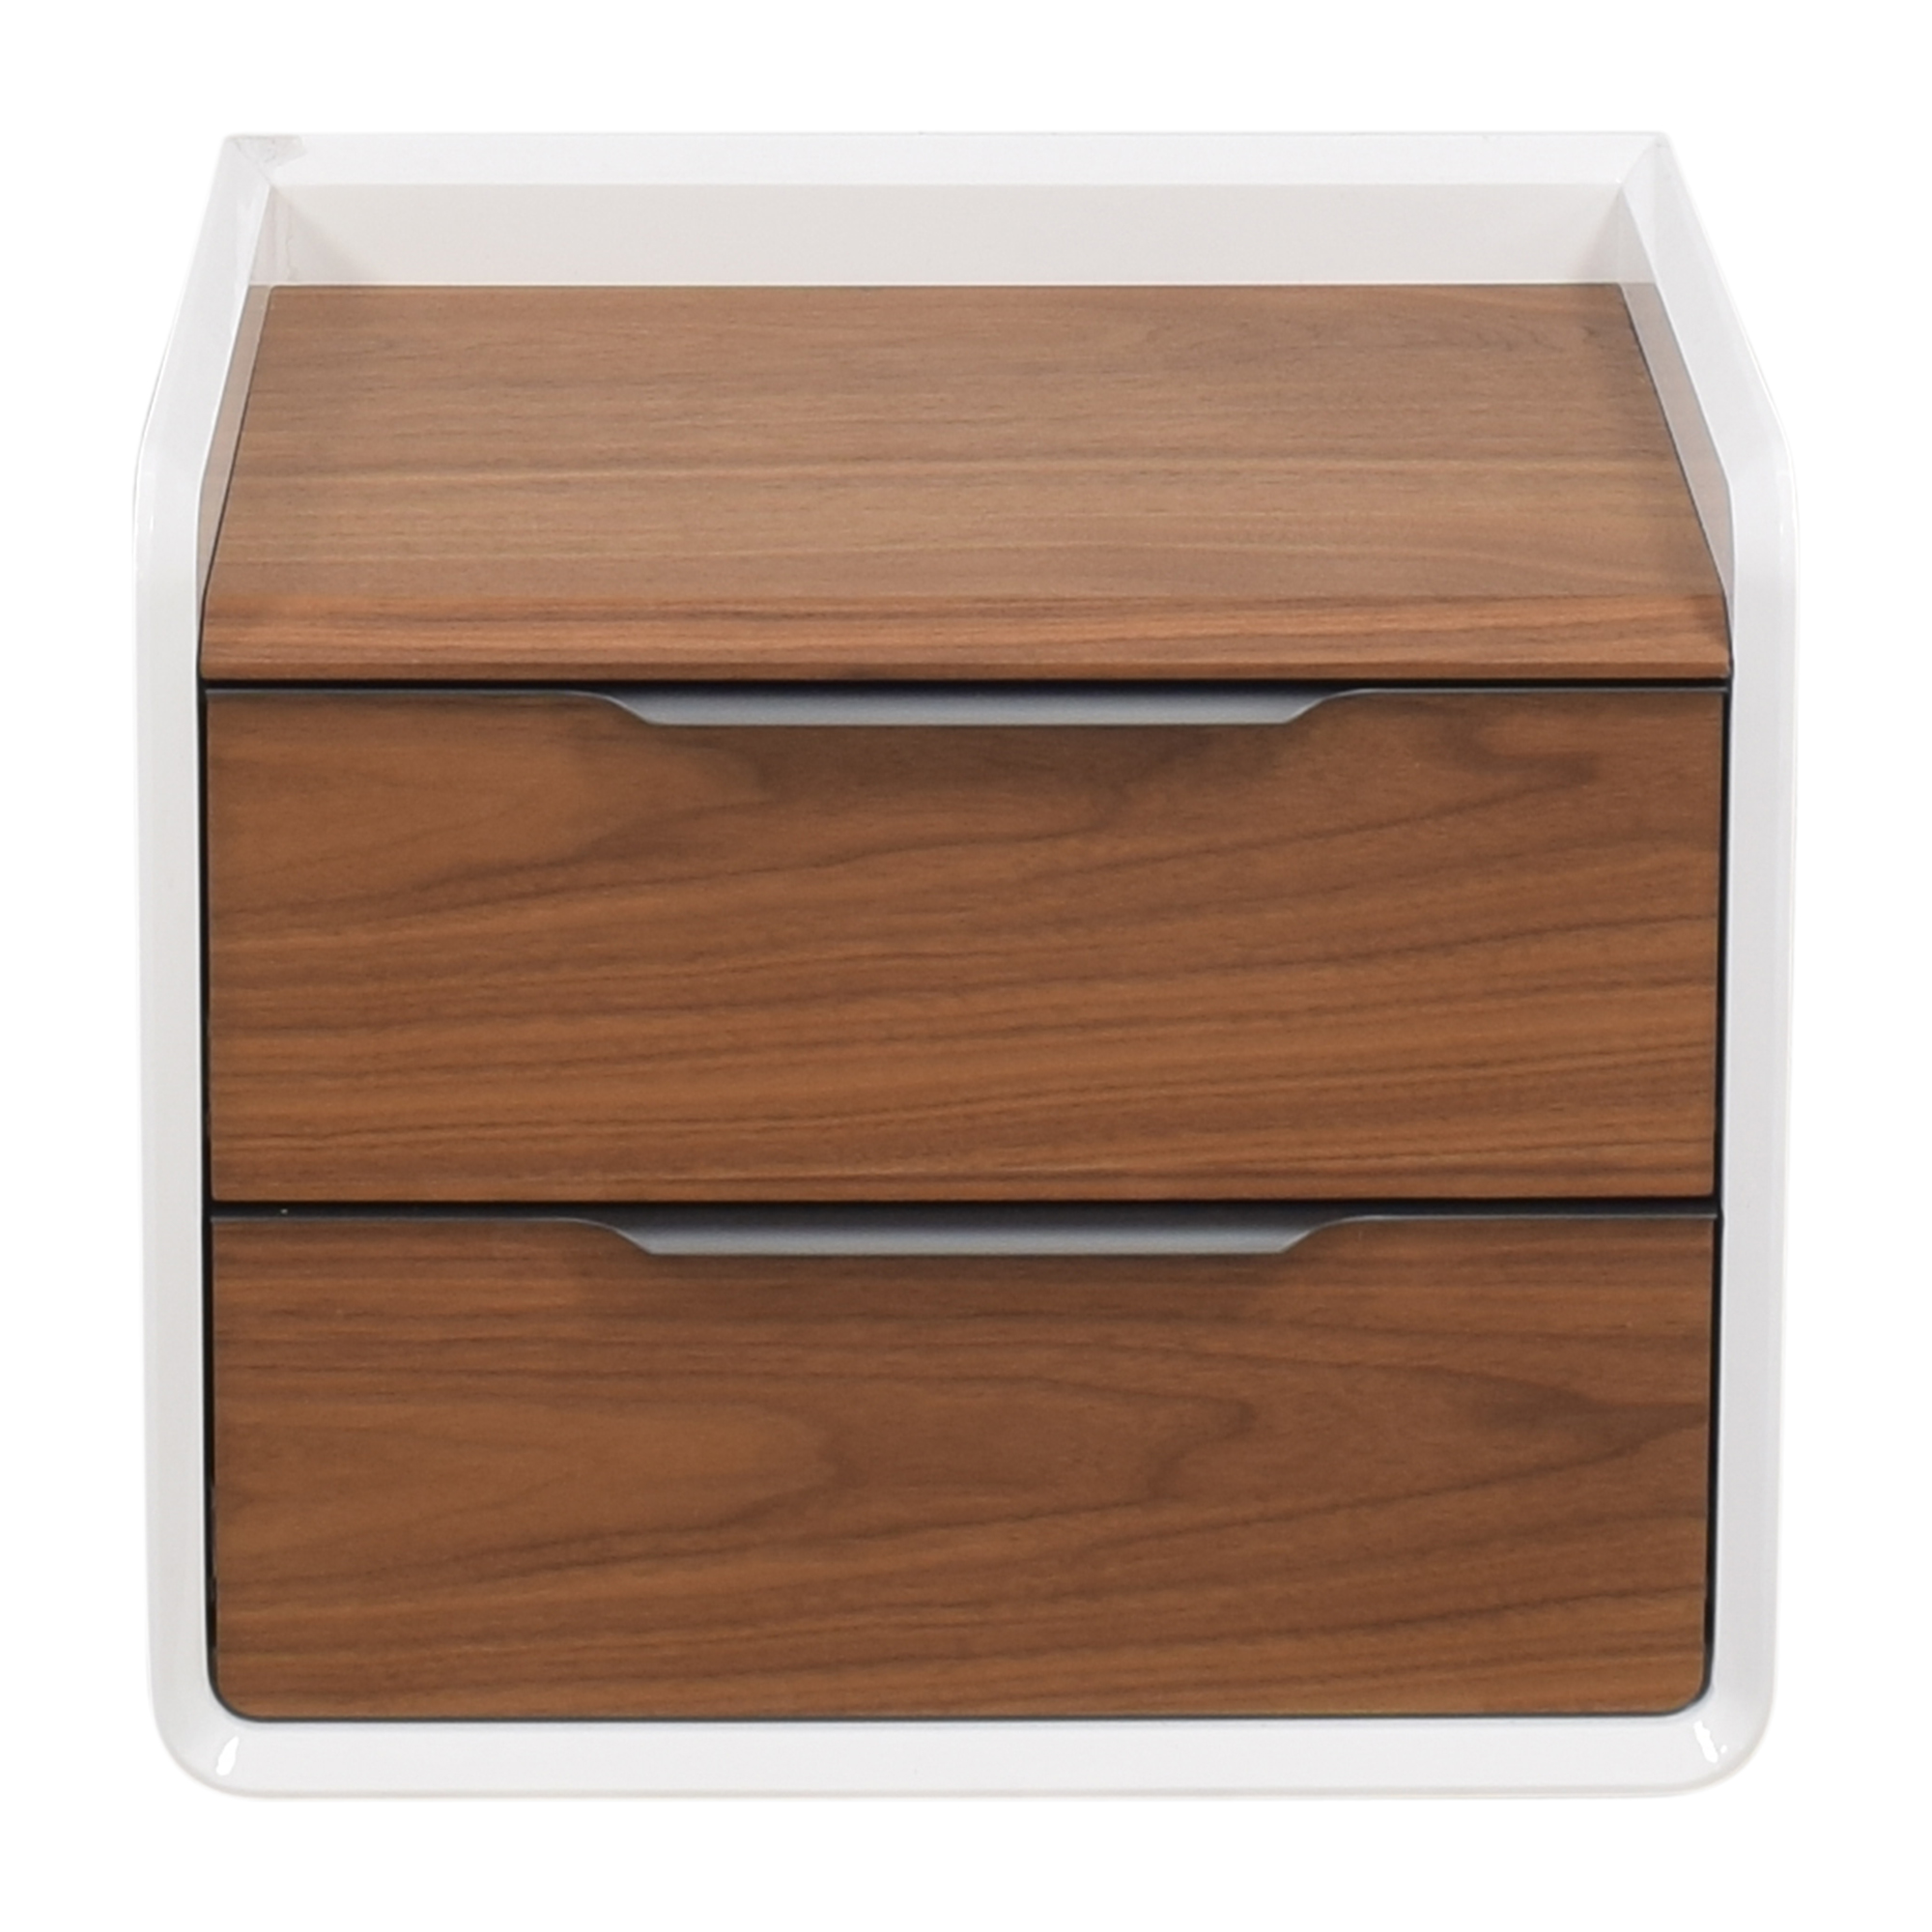 Rove Concepts Rove Concepts Grayson Nightstand price